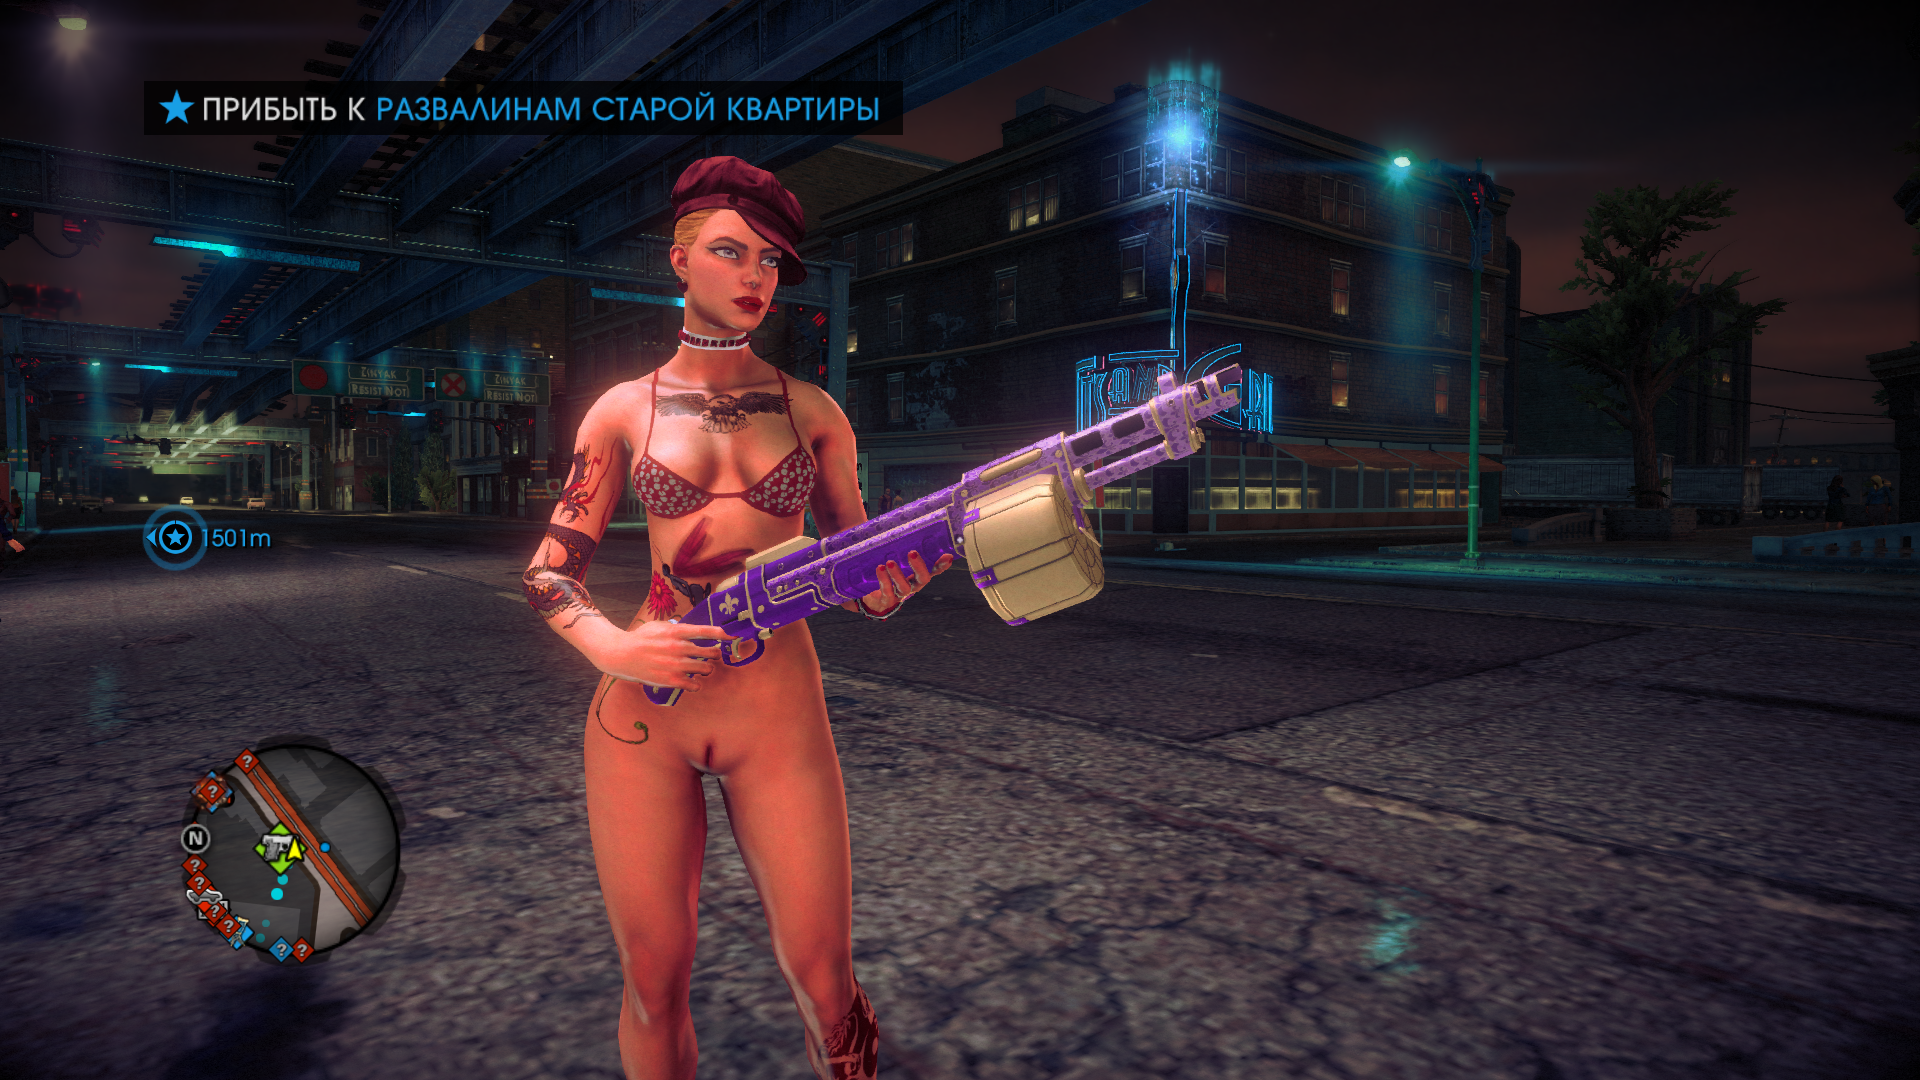 Saints Row IV Screenshot 2020.05.25 - 21.24.14.61.png